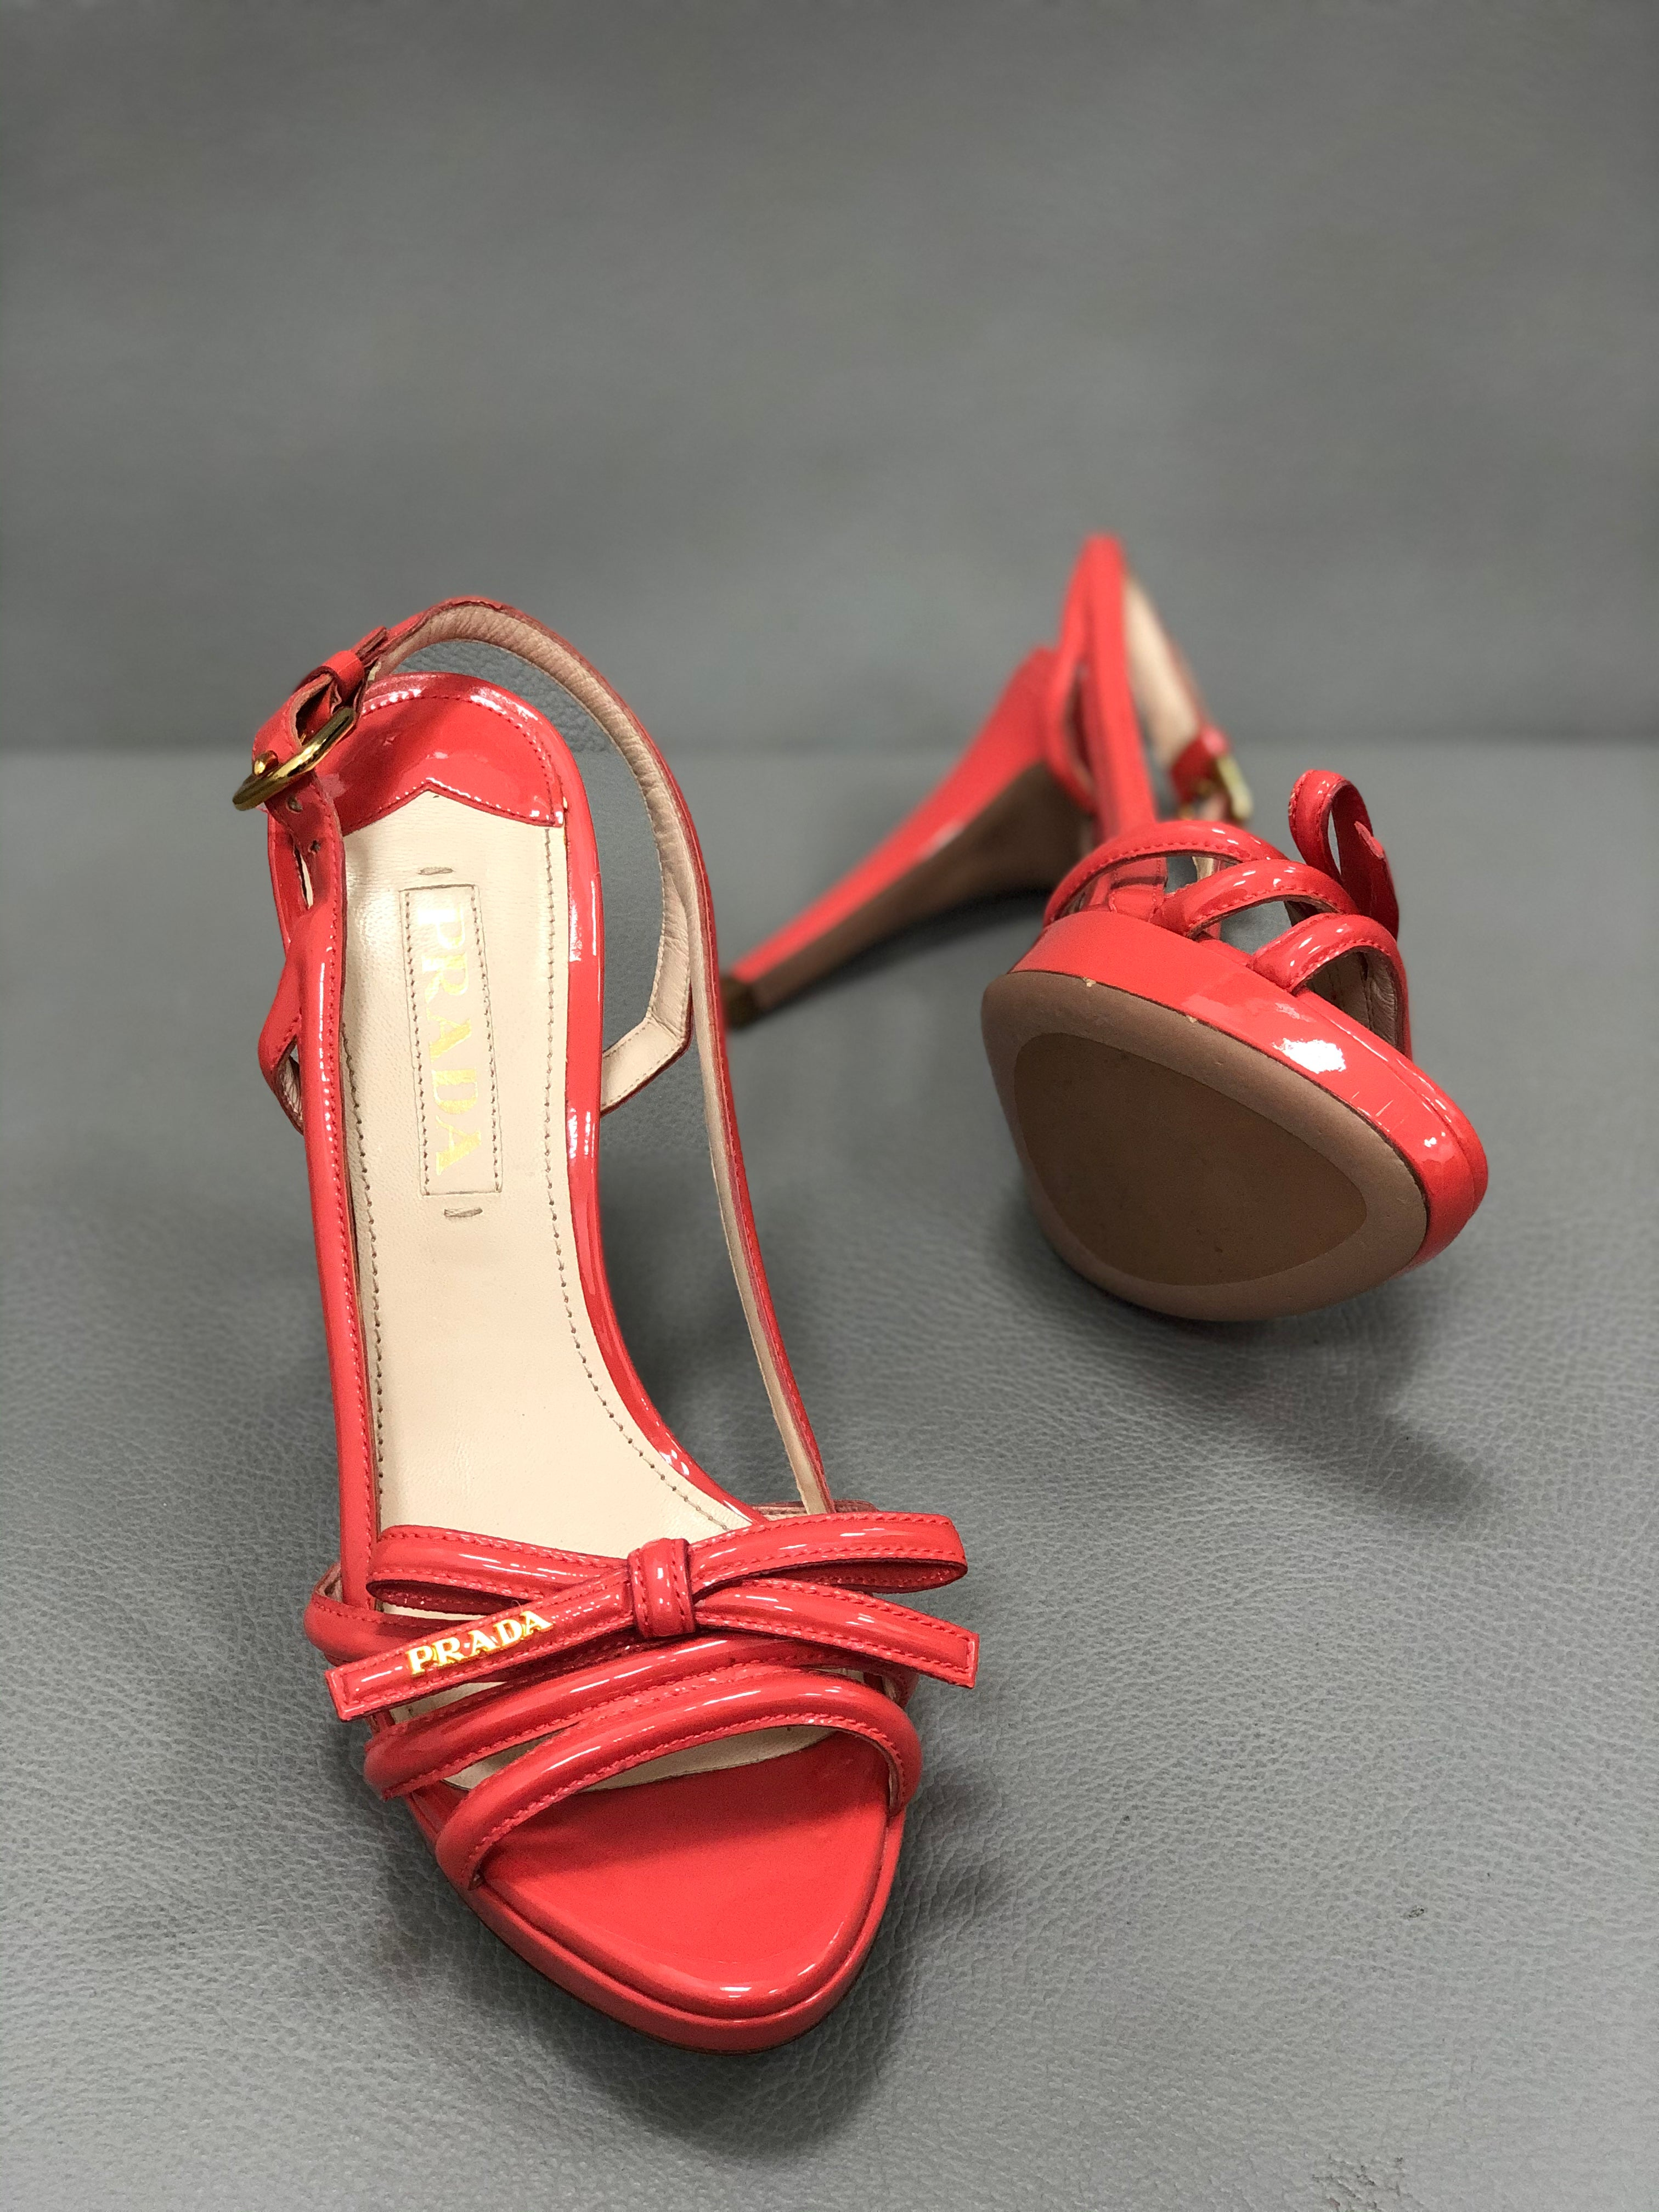 Shoes by Prada